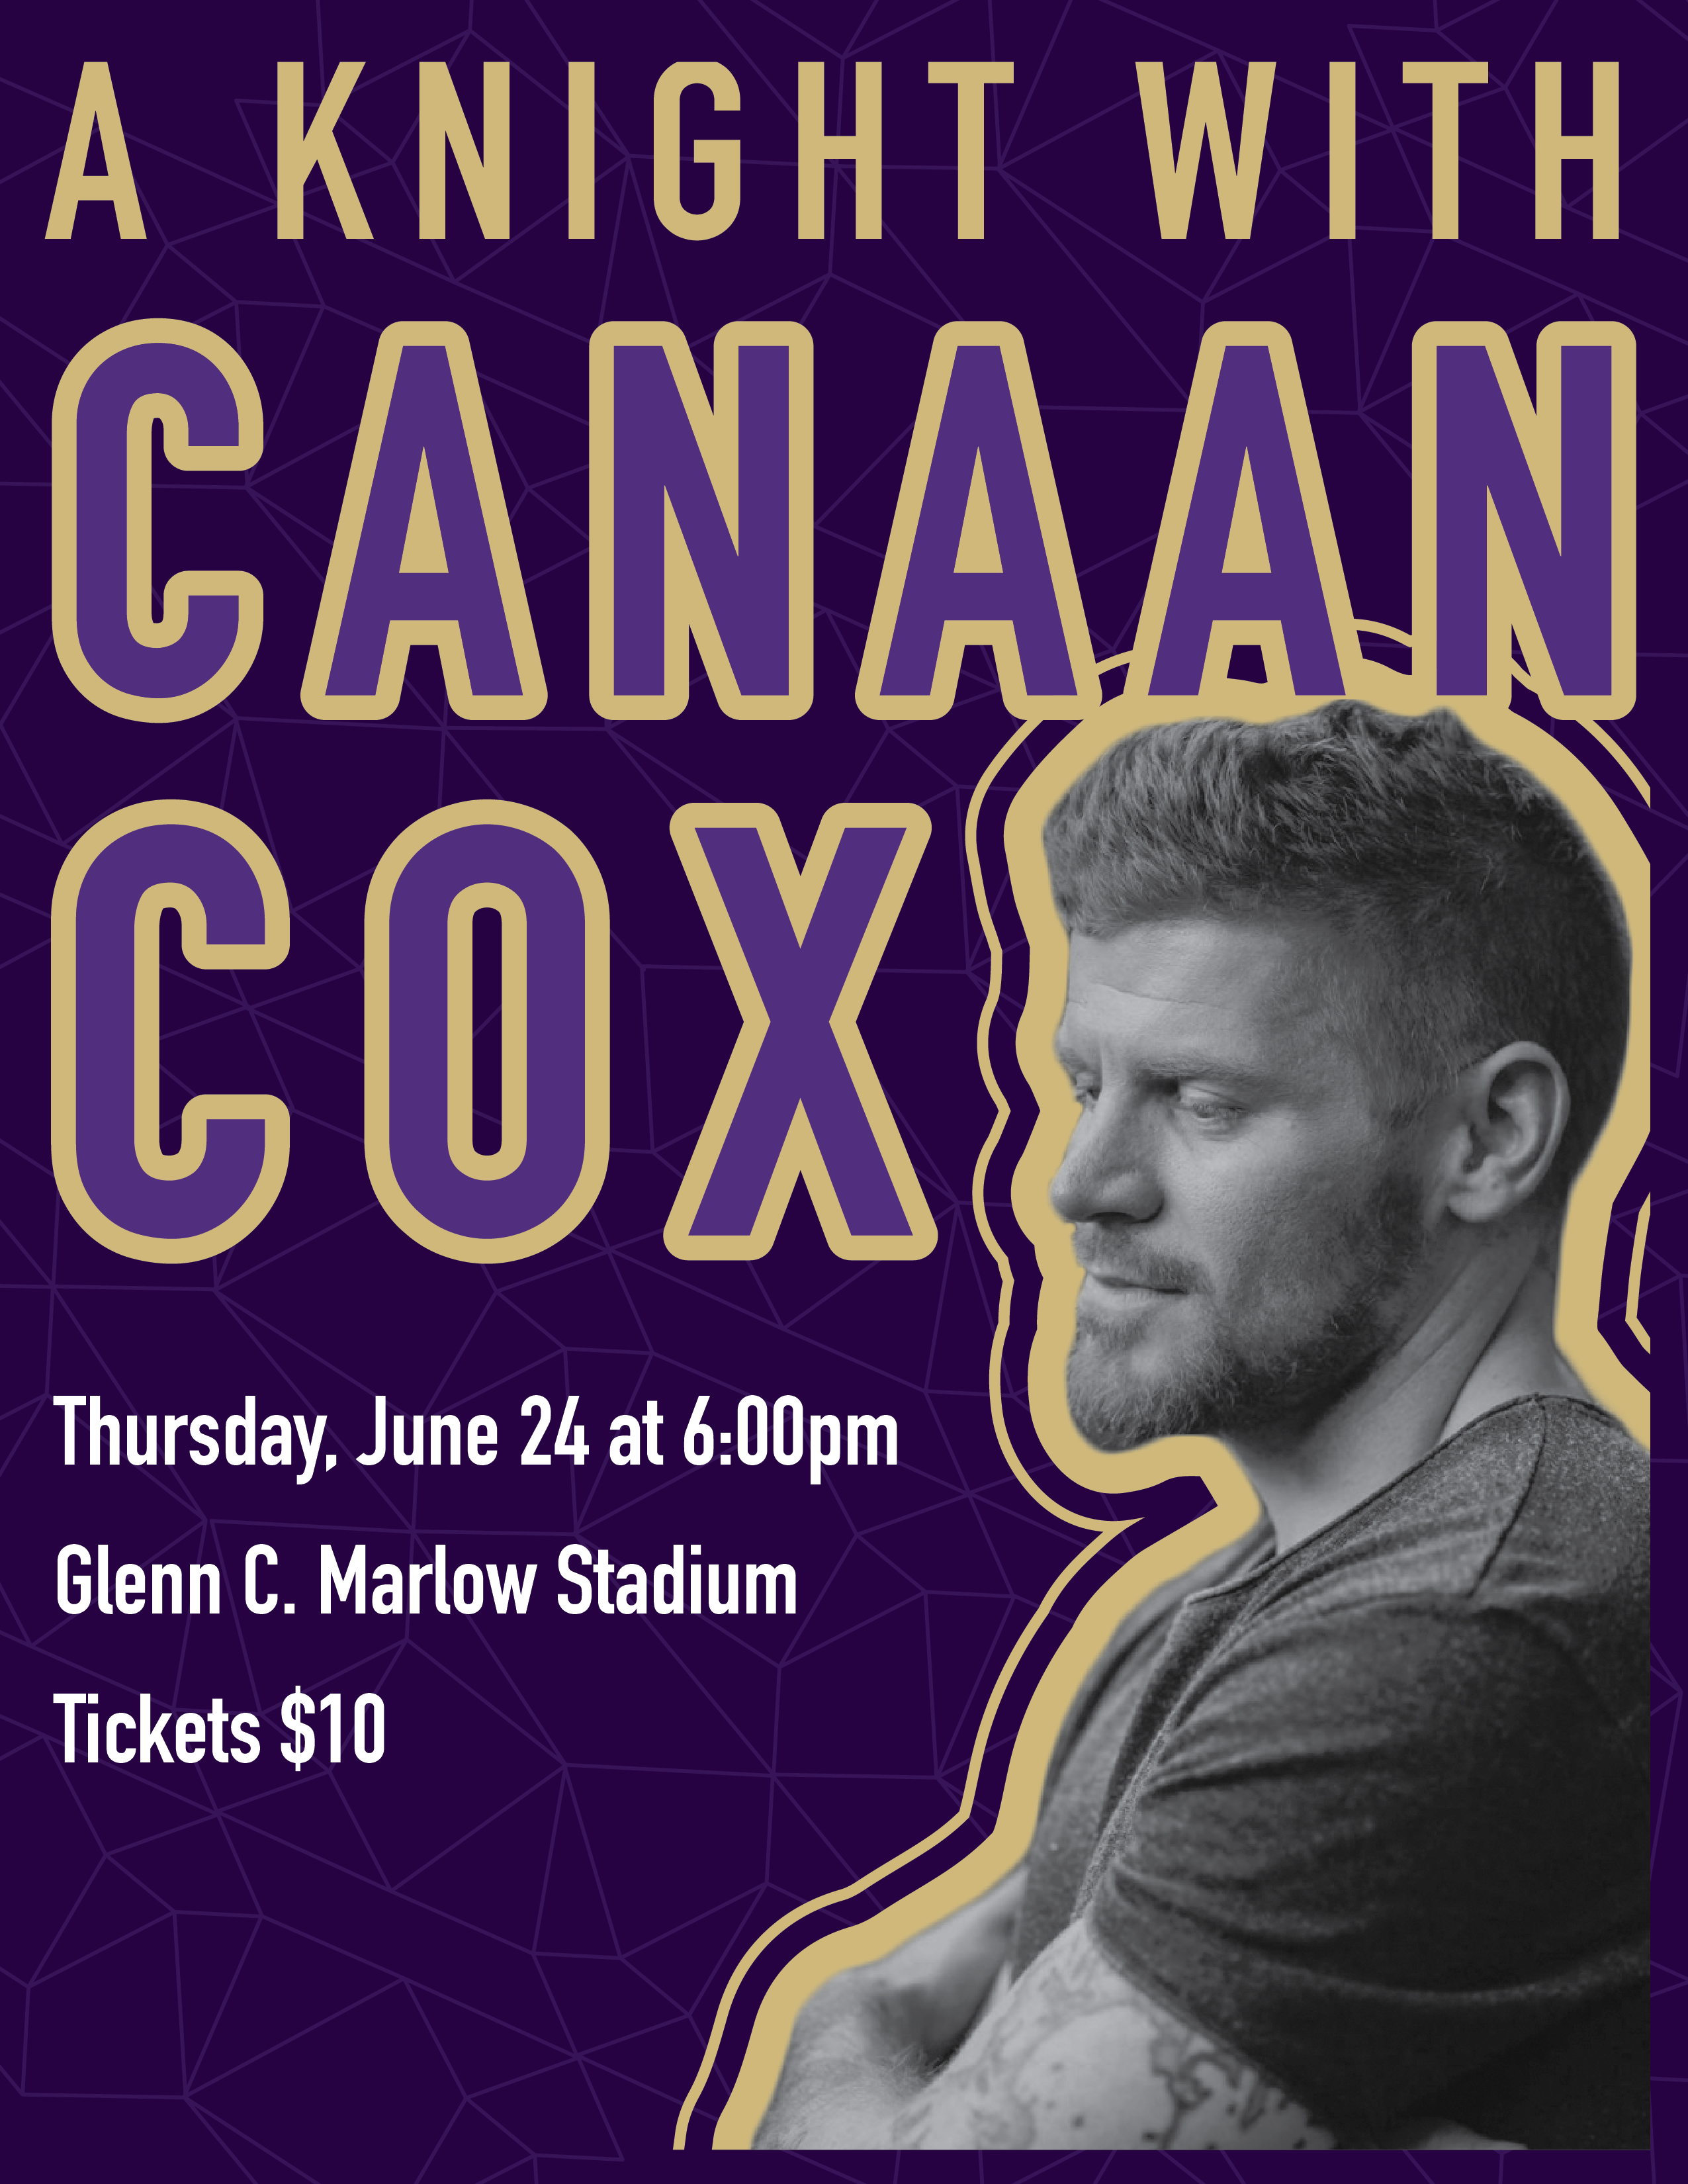 Image of Canaan Cox with text A knight with Canaan cox Thursday June 24 at 6:00pm Glenn C . Marlow Stadium Tickets $10